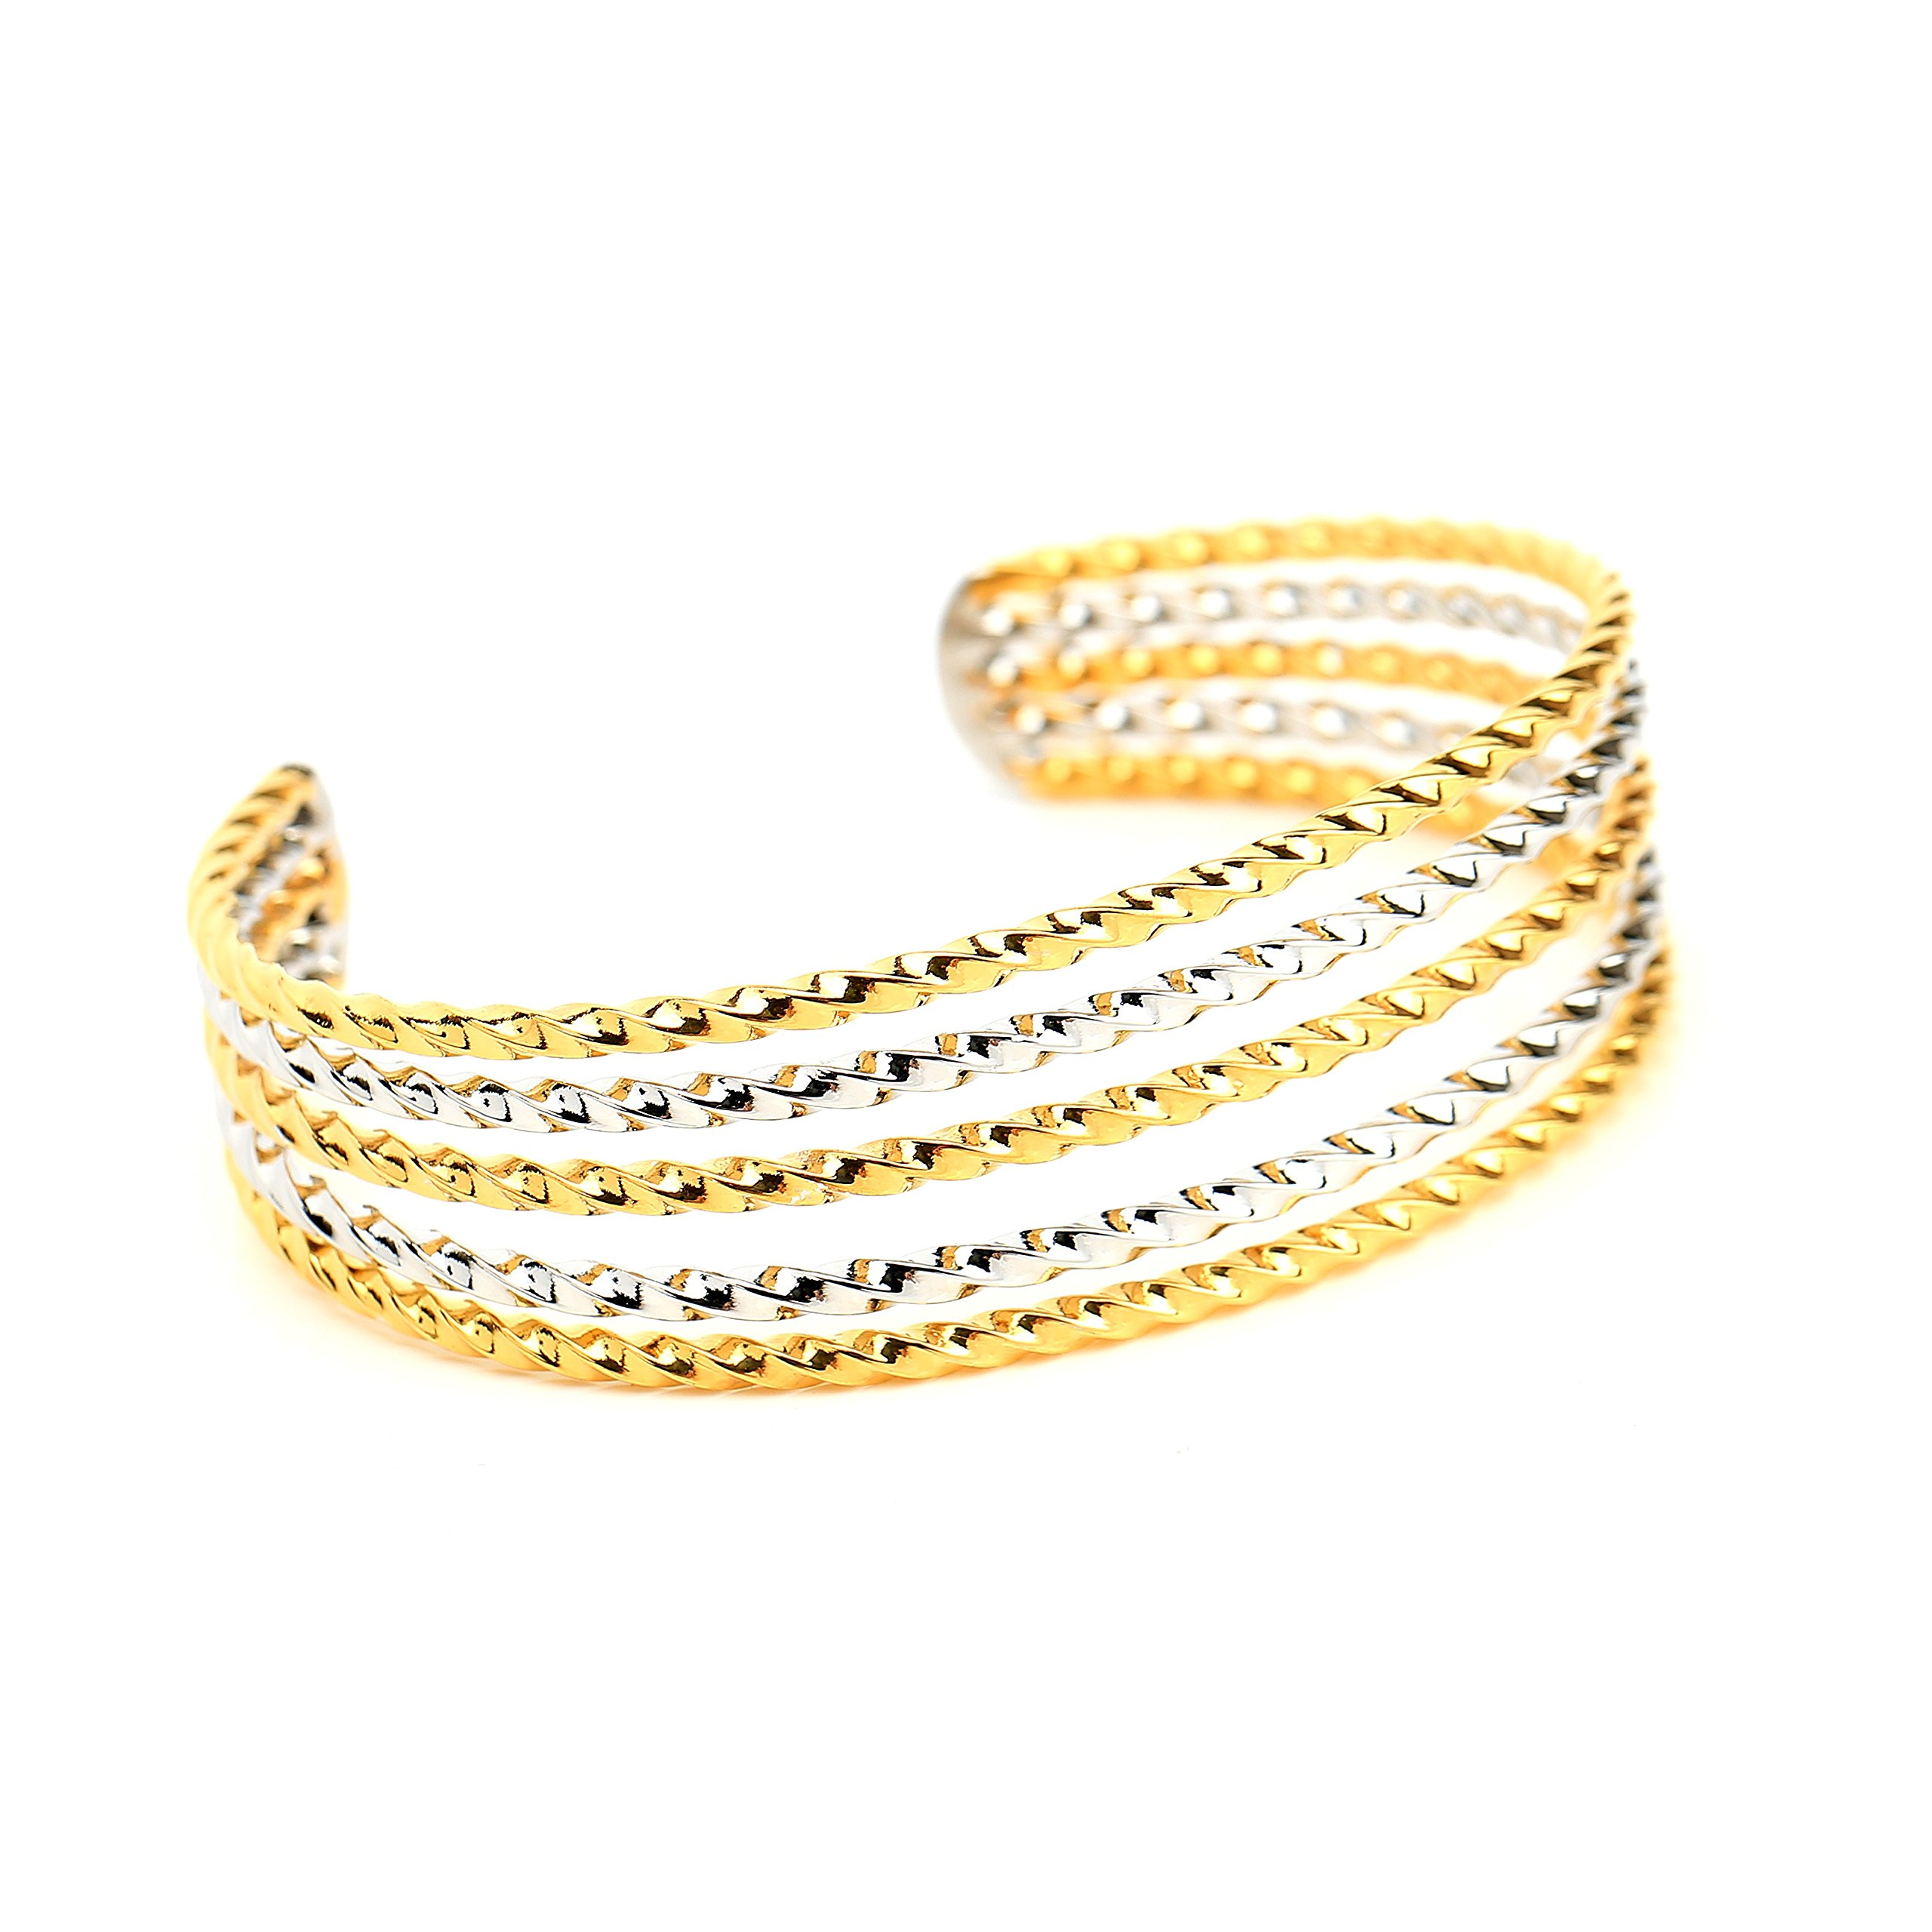 United Elegance - Contemporary Two-Tone (Gold & Silver Tone) Open Twisted Bangle Bracelet Cuff